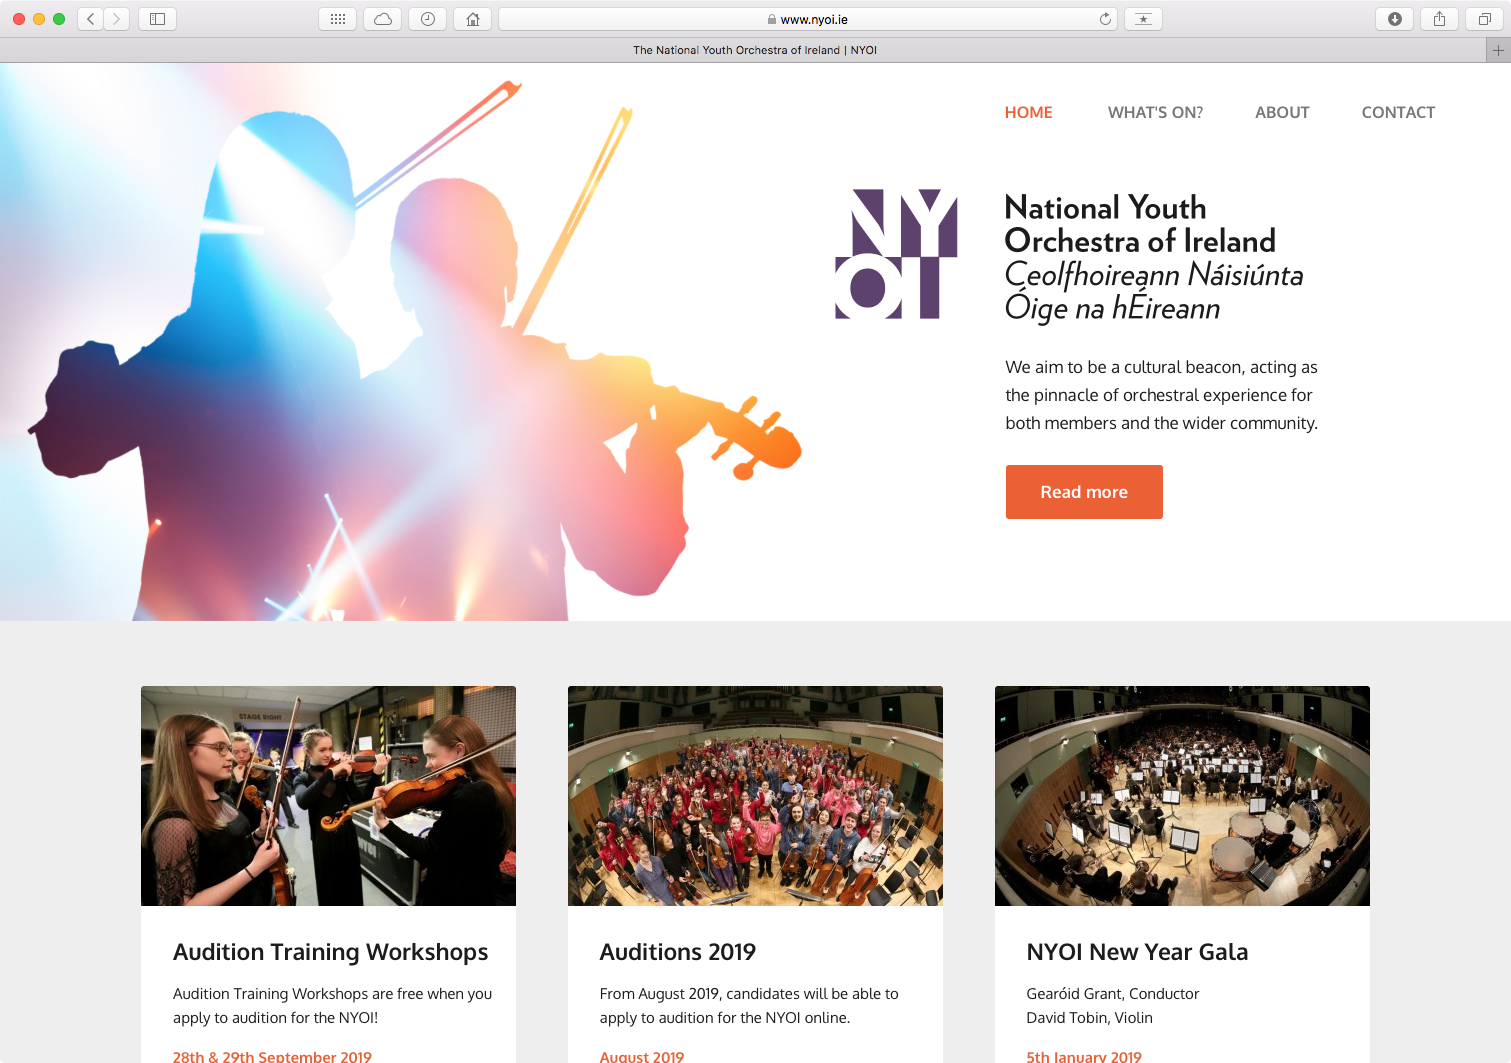 Cover image: National Youth Orchestra website